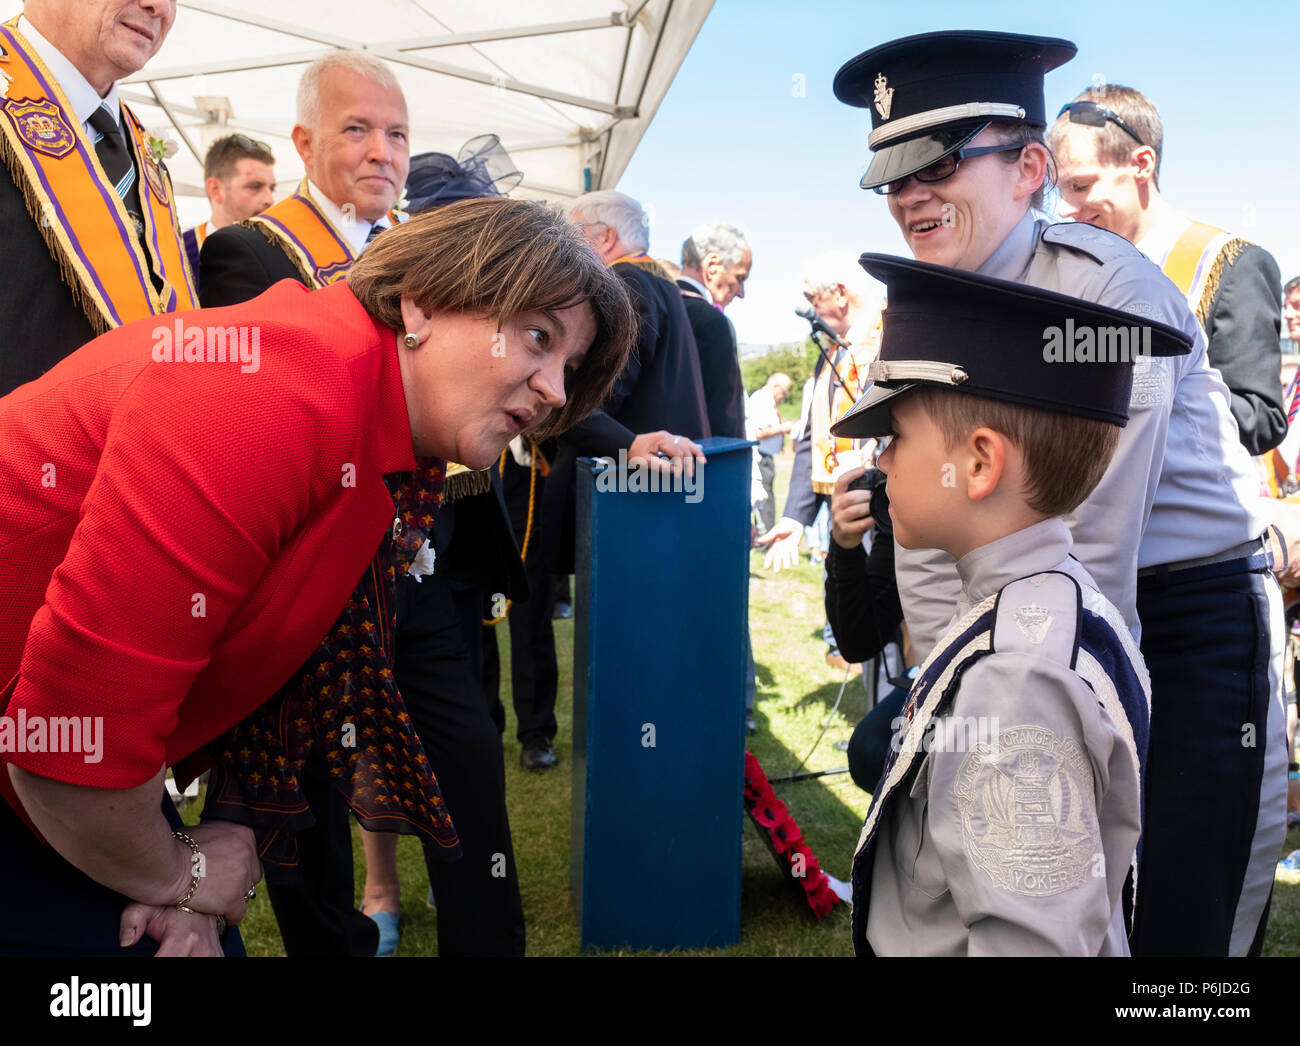 Cowdenbeath, Scotland, UK. 30 June, 2018. More than 4000 marchers take part in annual Battle of the Boyne Orange Walk in Cowdenbeath, Fife. The walk was attended by DUP leader Arlene Foster. Credit: Iain Masterton/Alamy Live News - Stock Image